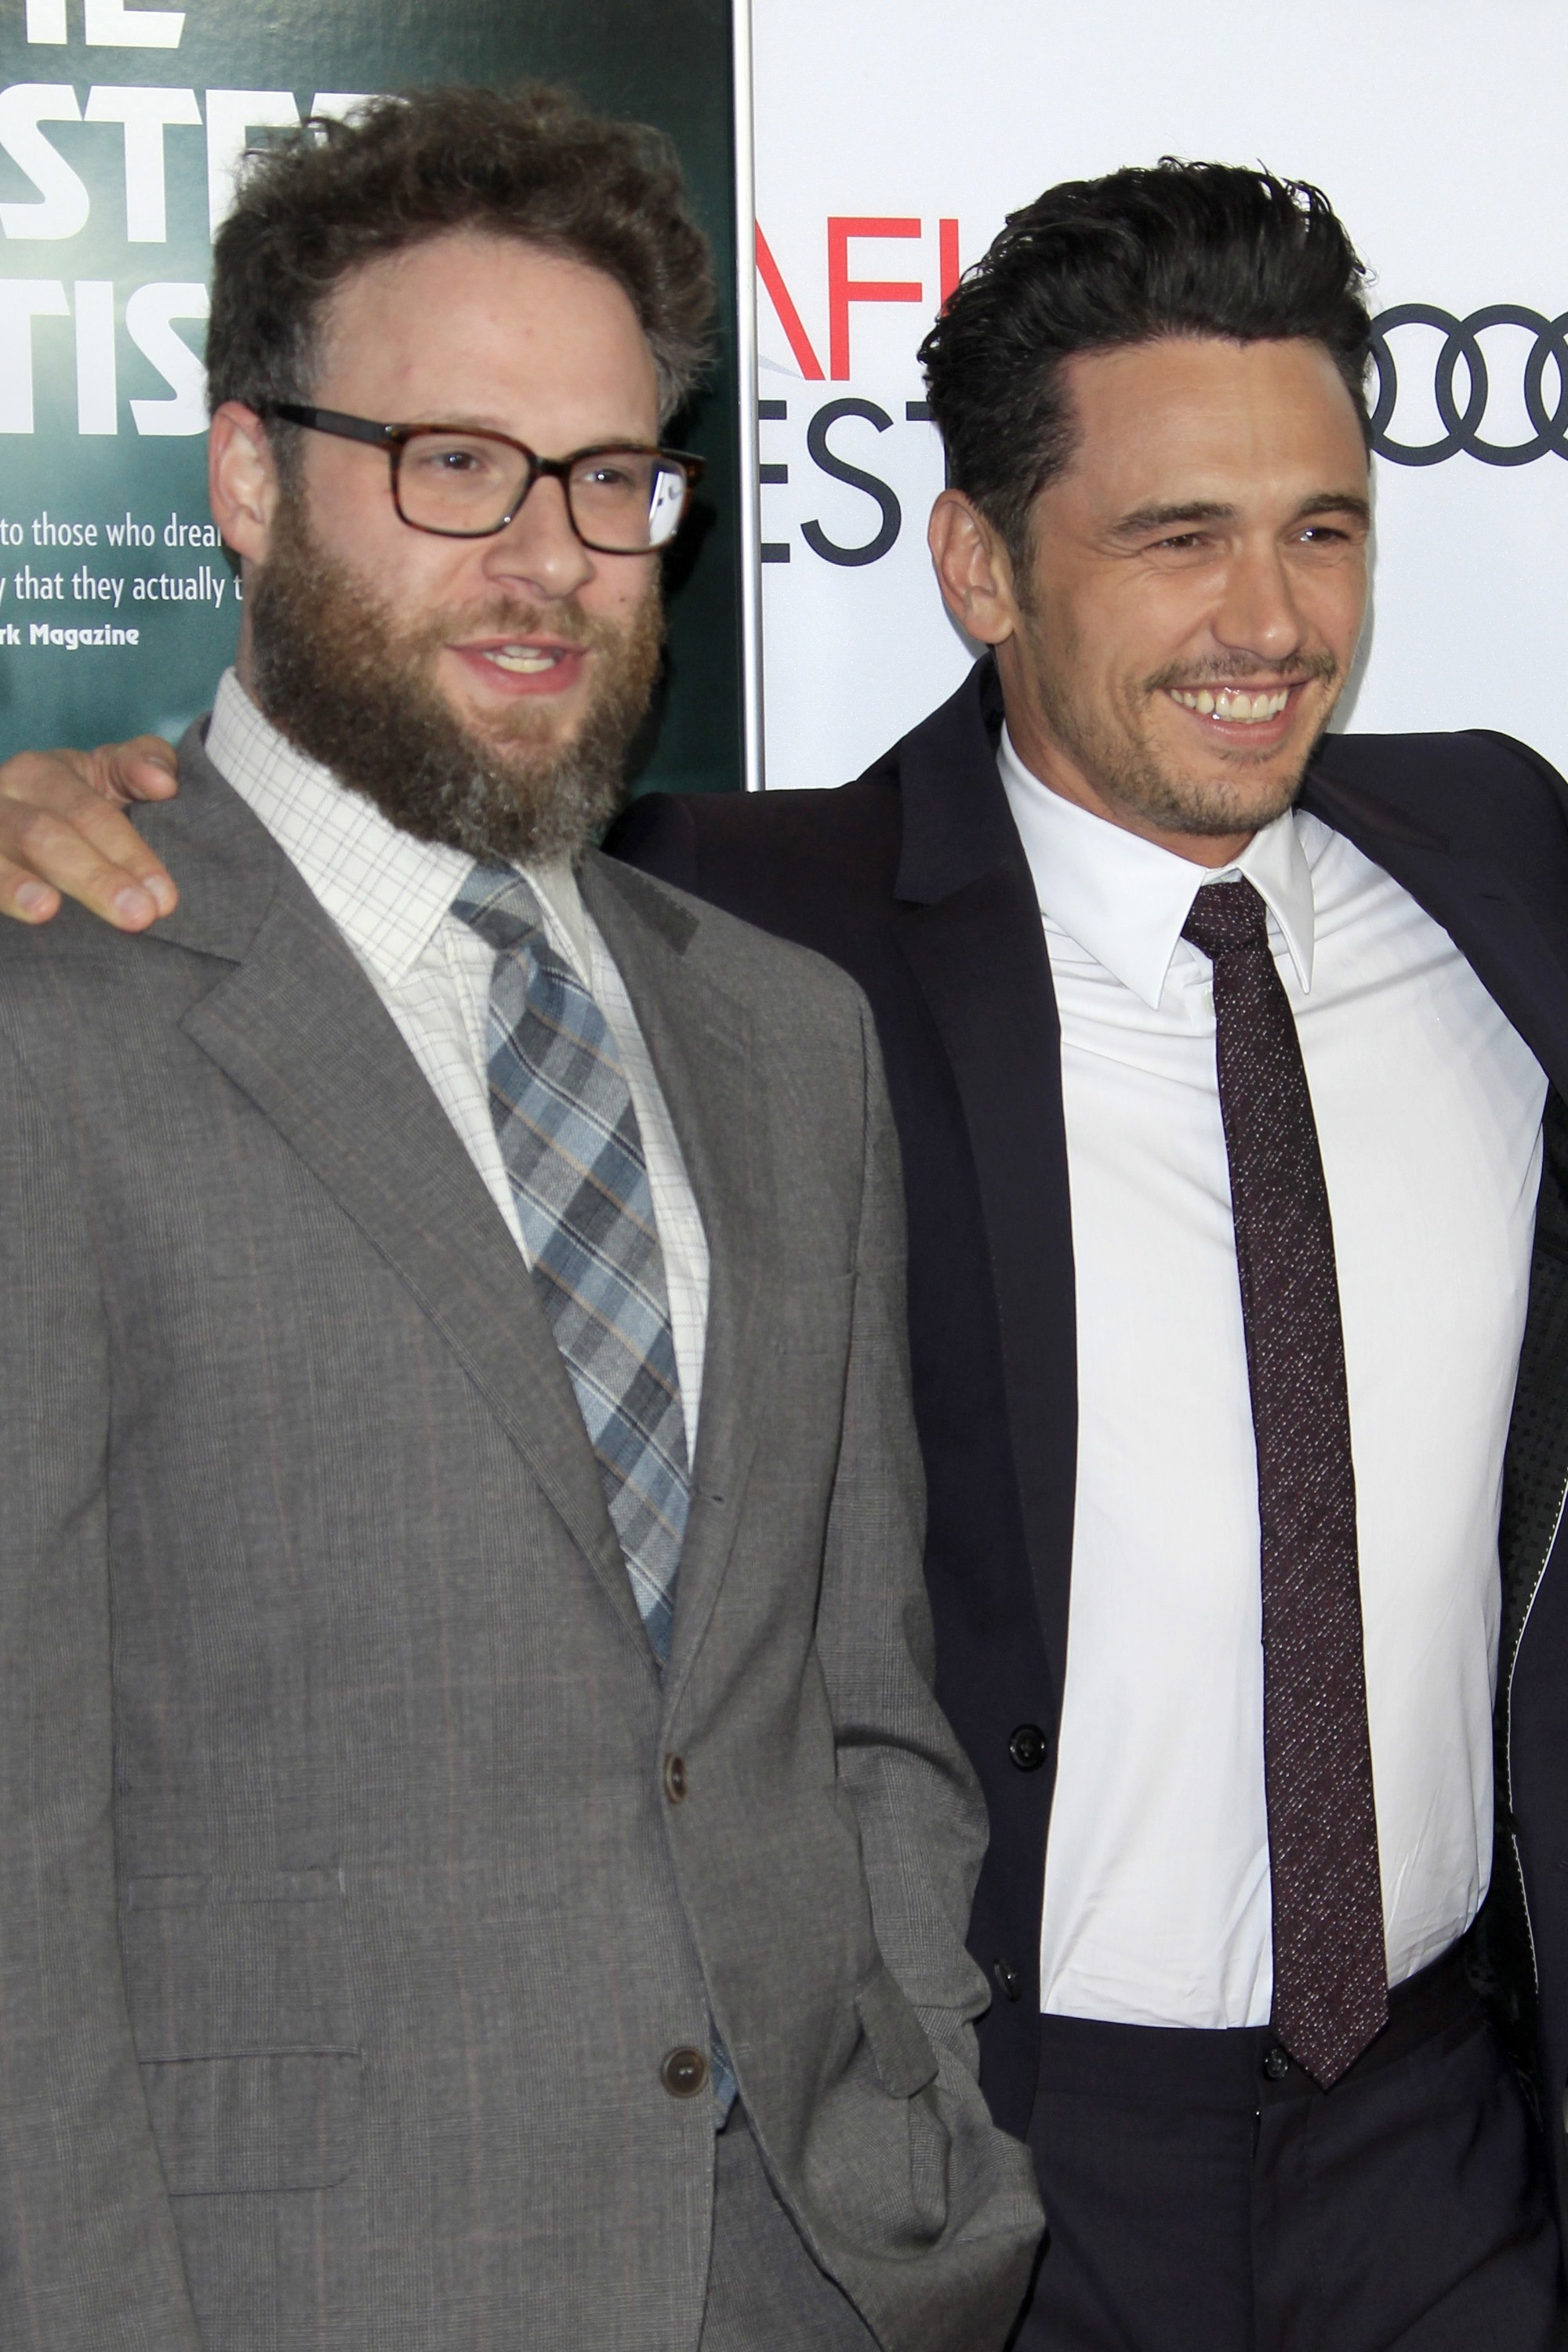 Seth and James posing on a red carpet together